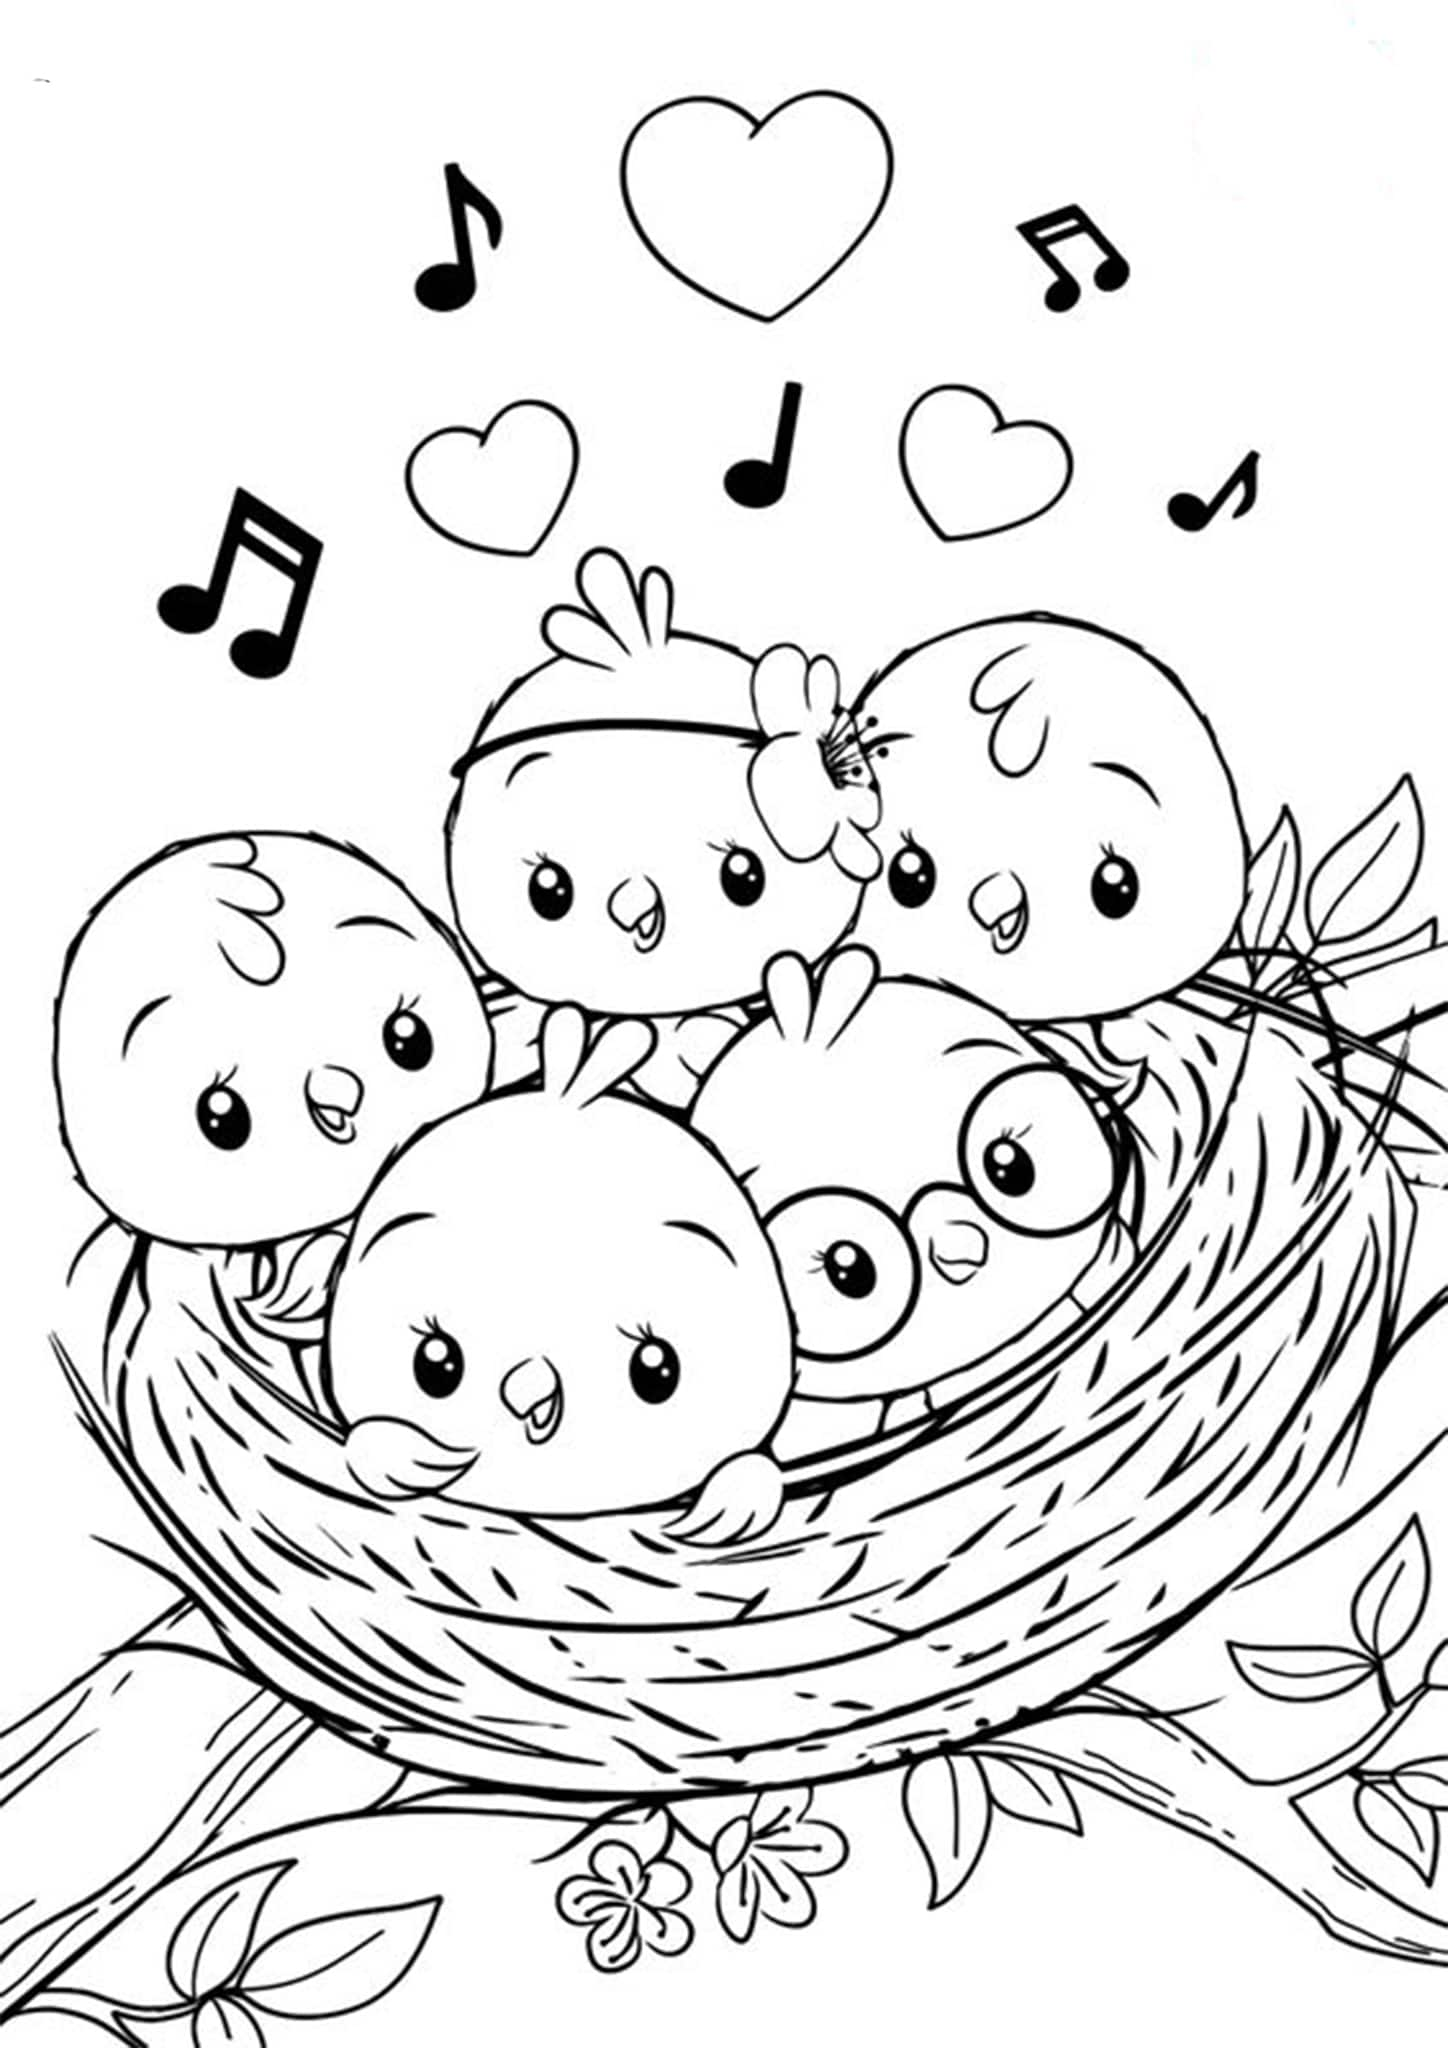 coloring birds for kids free easy to print bird coloring pages tulamama for birds kids coloring